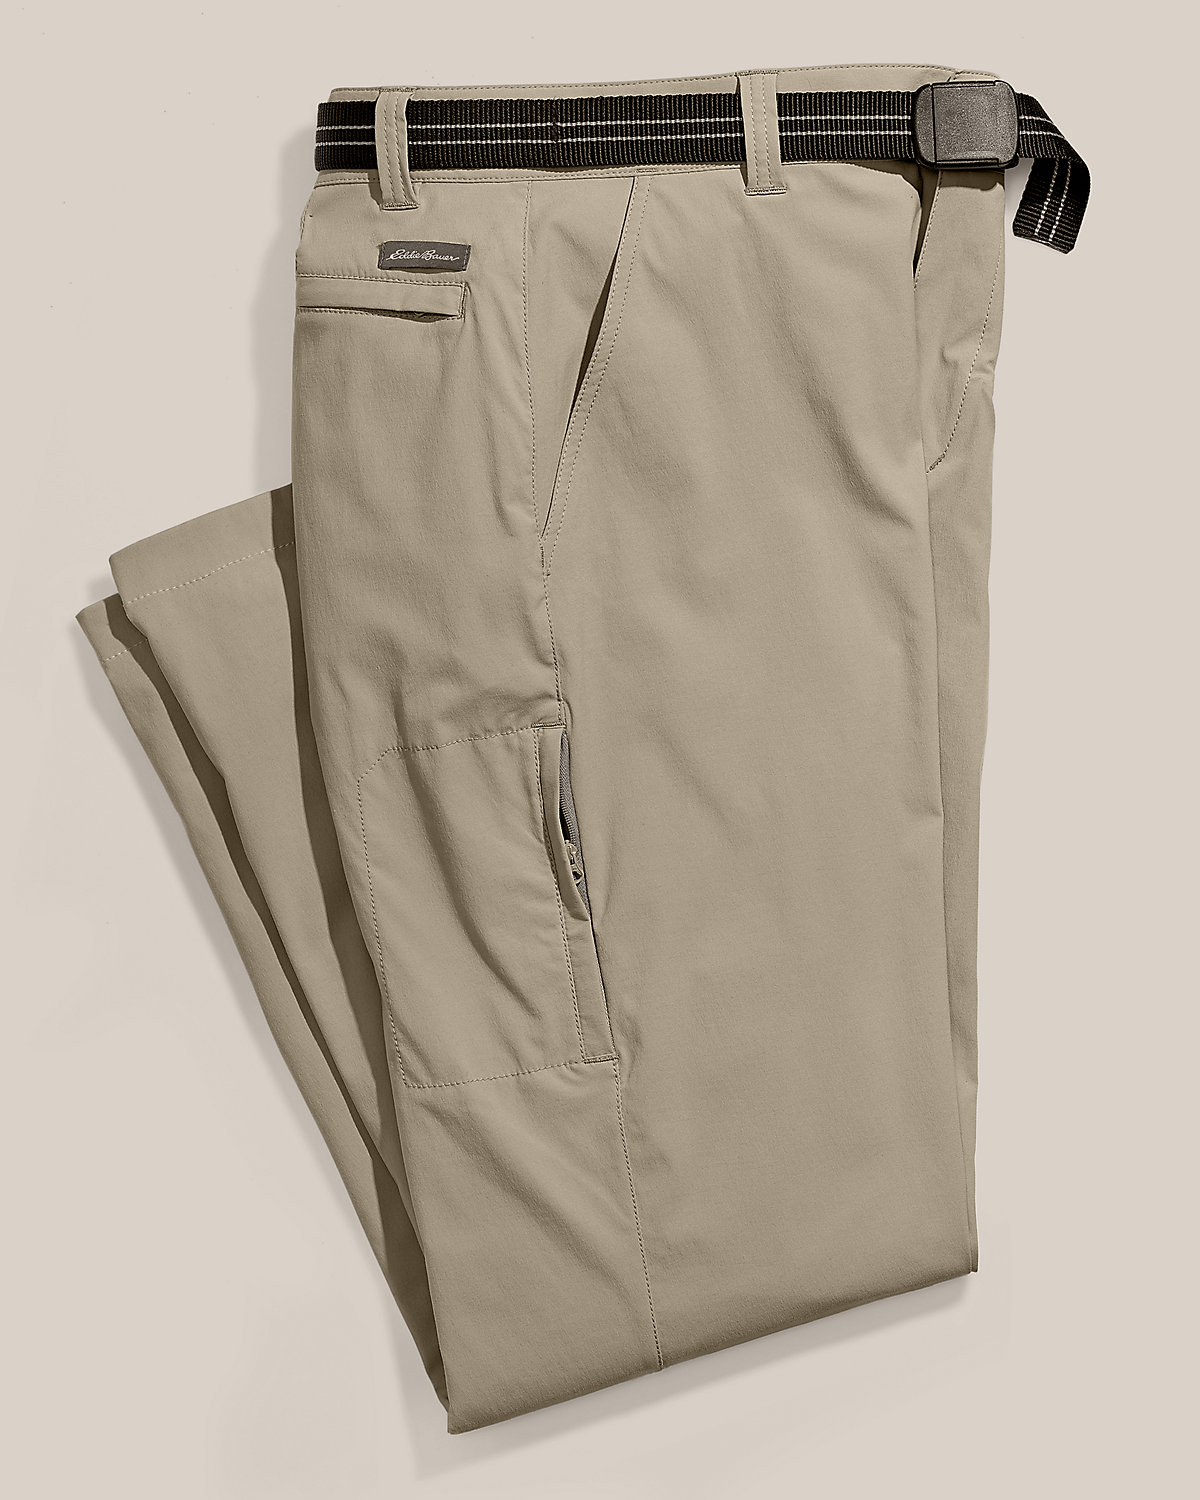 Horizon Pants from Eddie Bauer are perfect for long term travel.